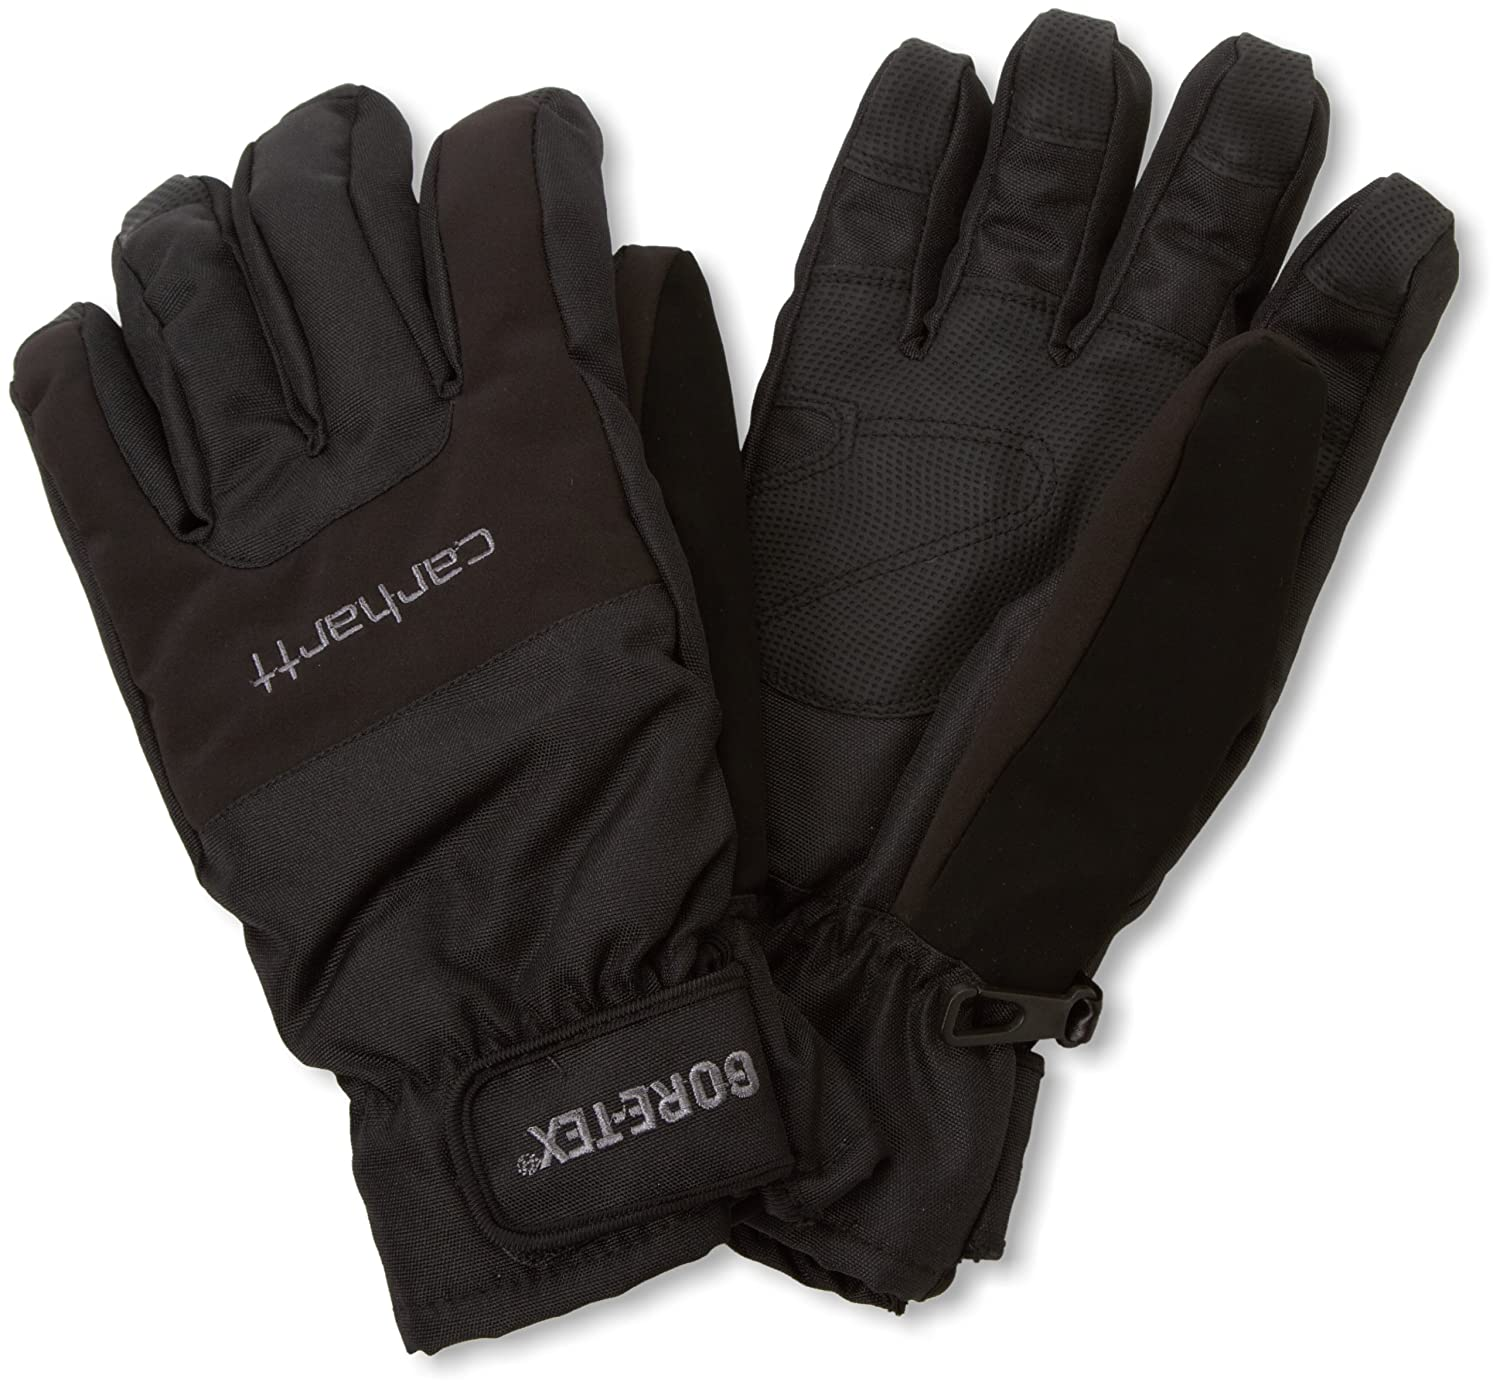 Insulated leather work gloves amazon - Amazon Com Carhartt Men S Storm Gore Tex Windproof Waterproof Insulated Work Glove Black Small Clothing